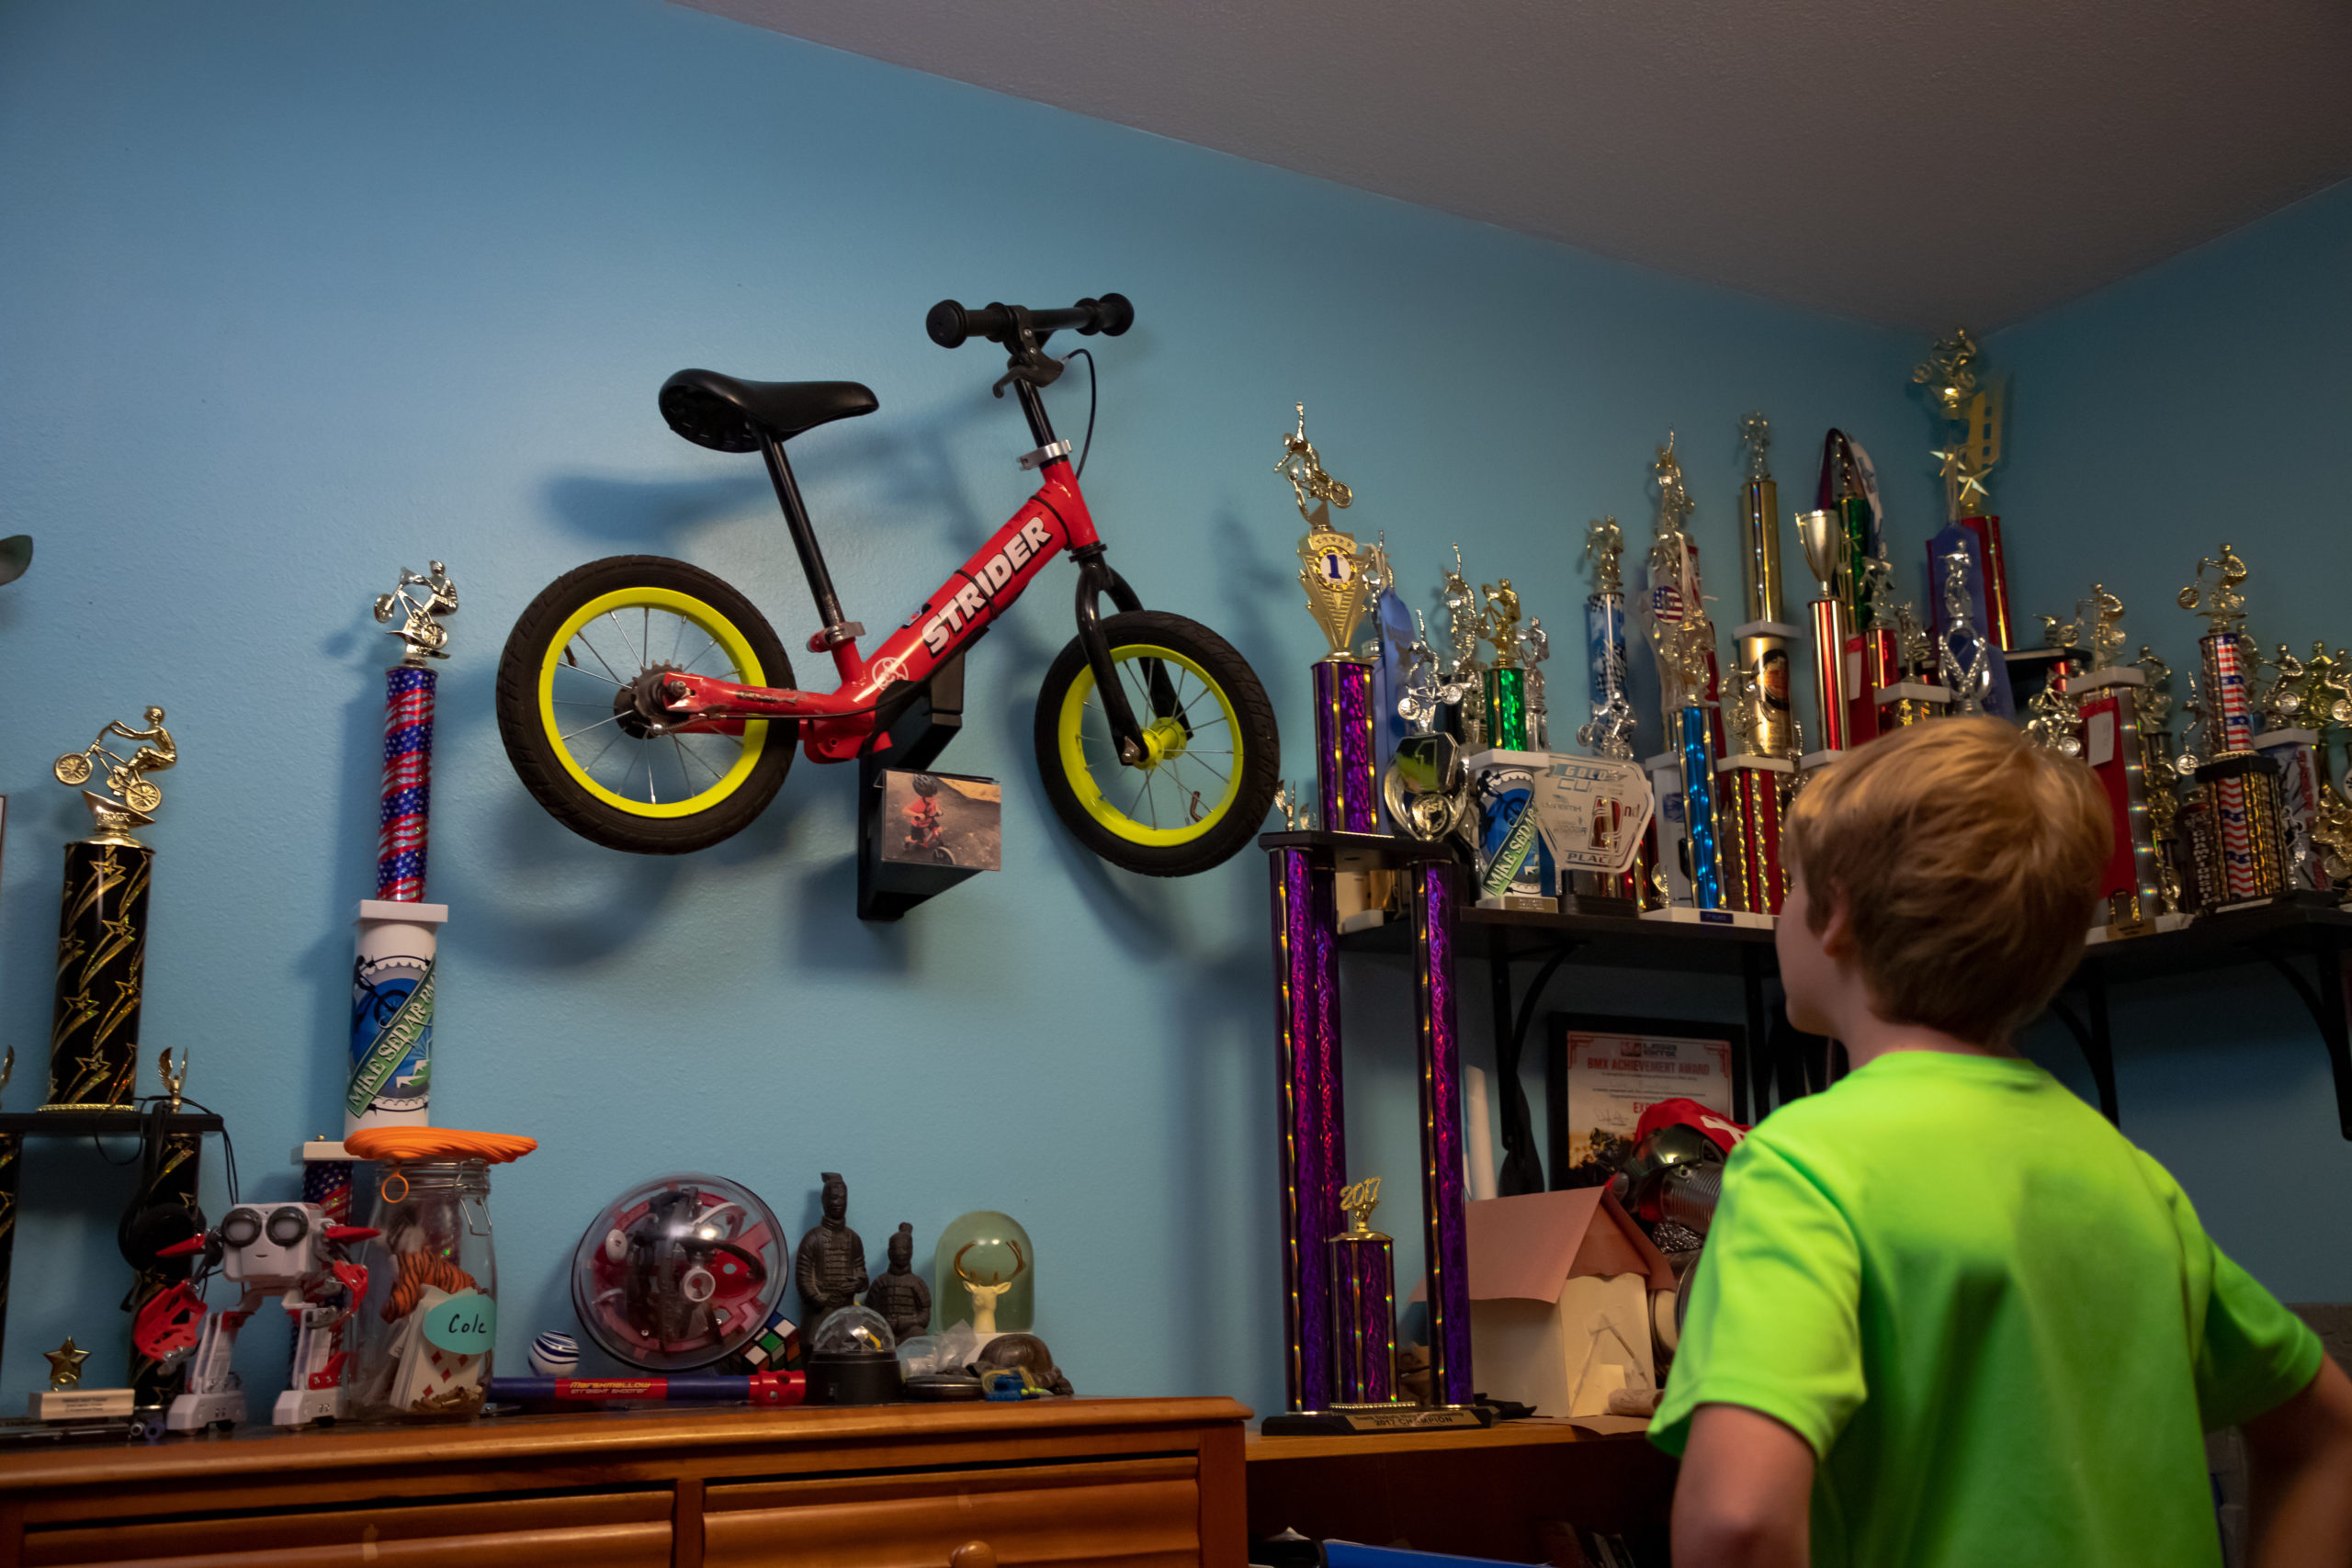 Memory mount hung up on wall in boy's bedroom with old red 12 Classic bike and boy looking at it proudly